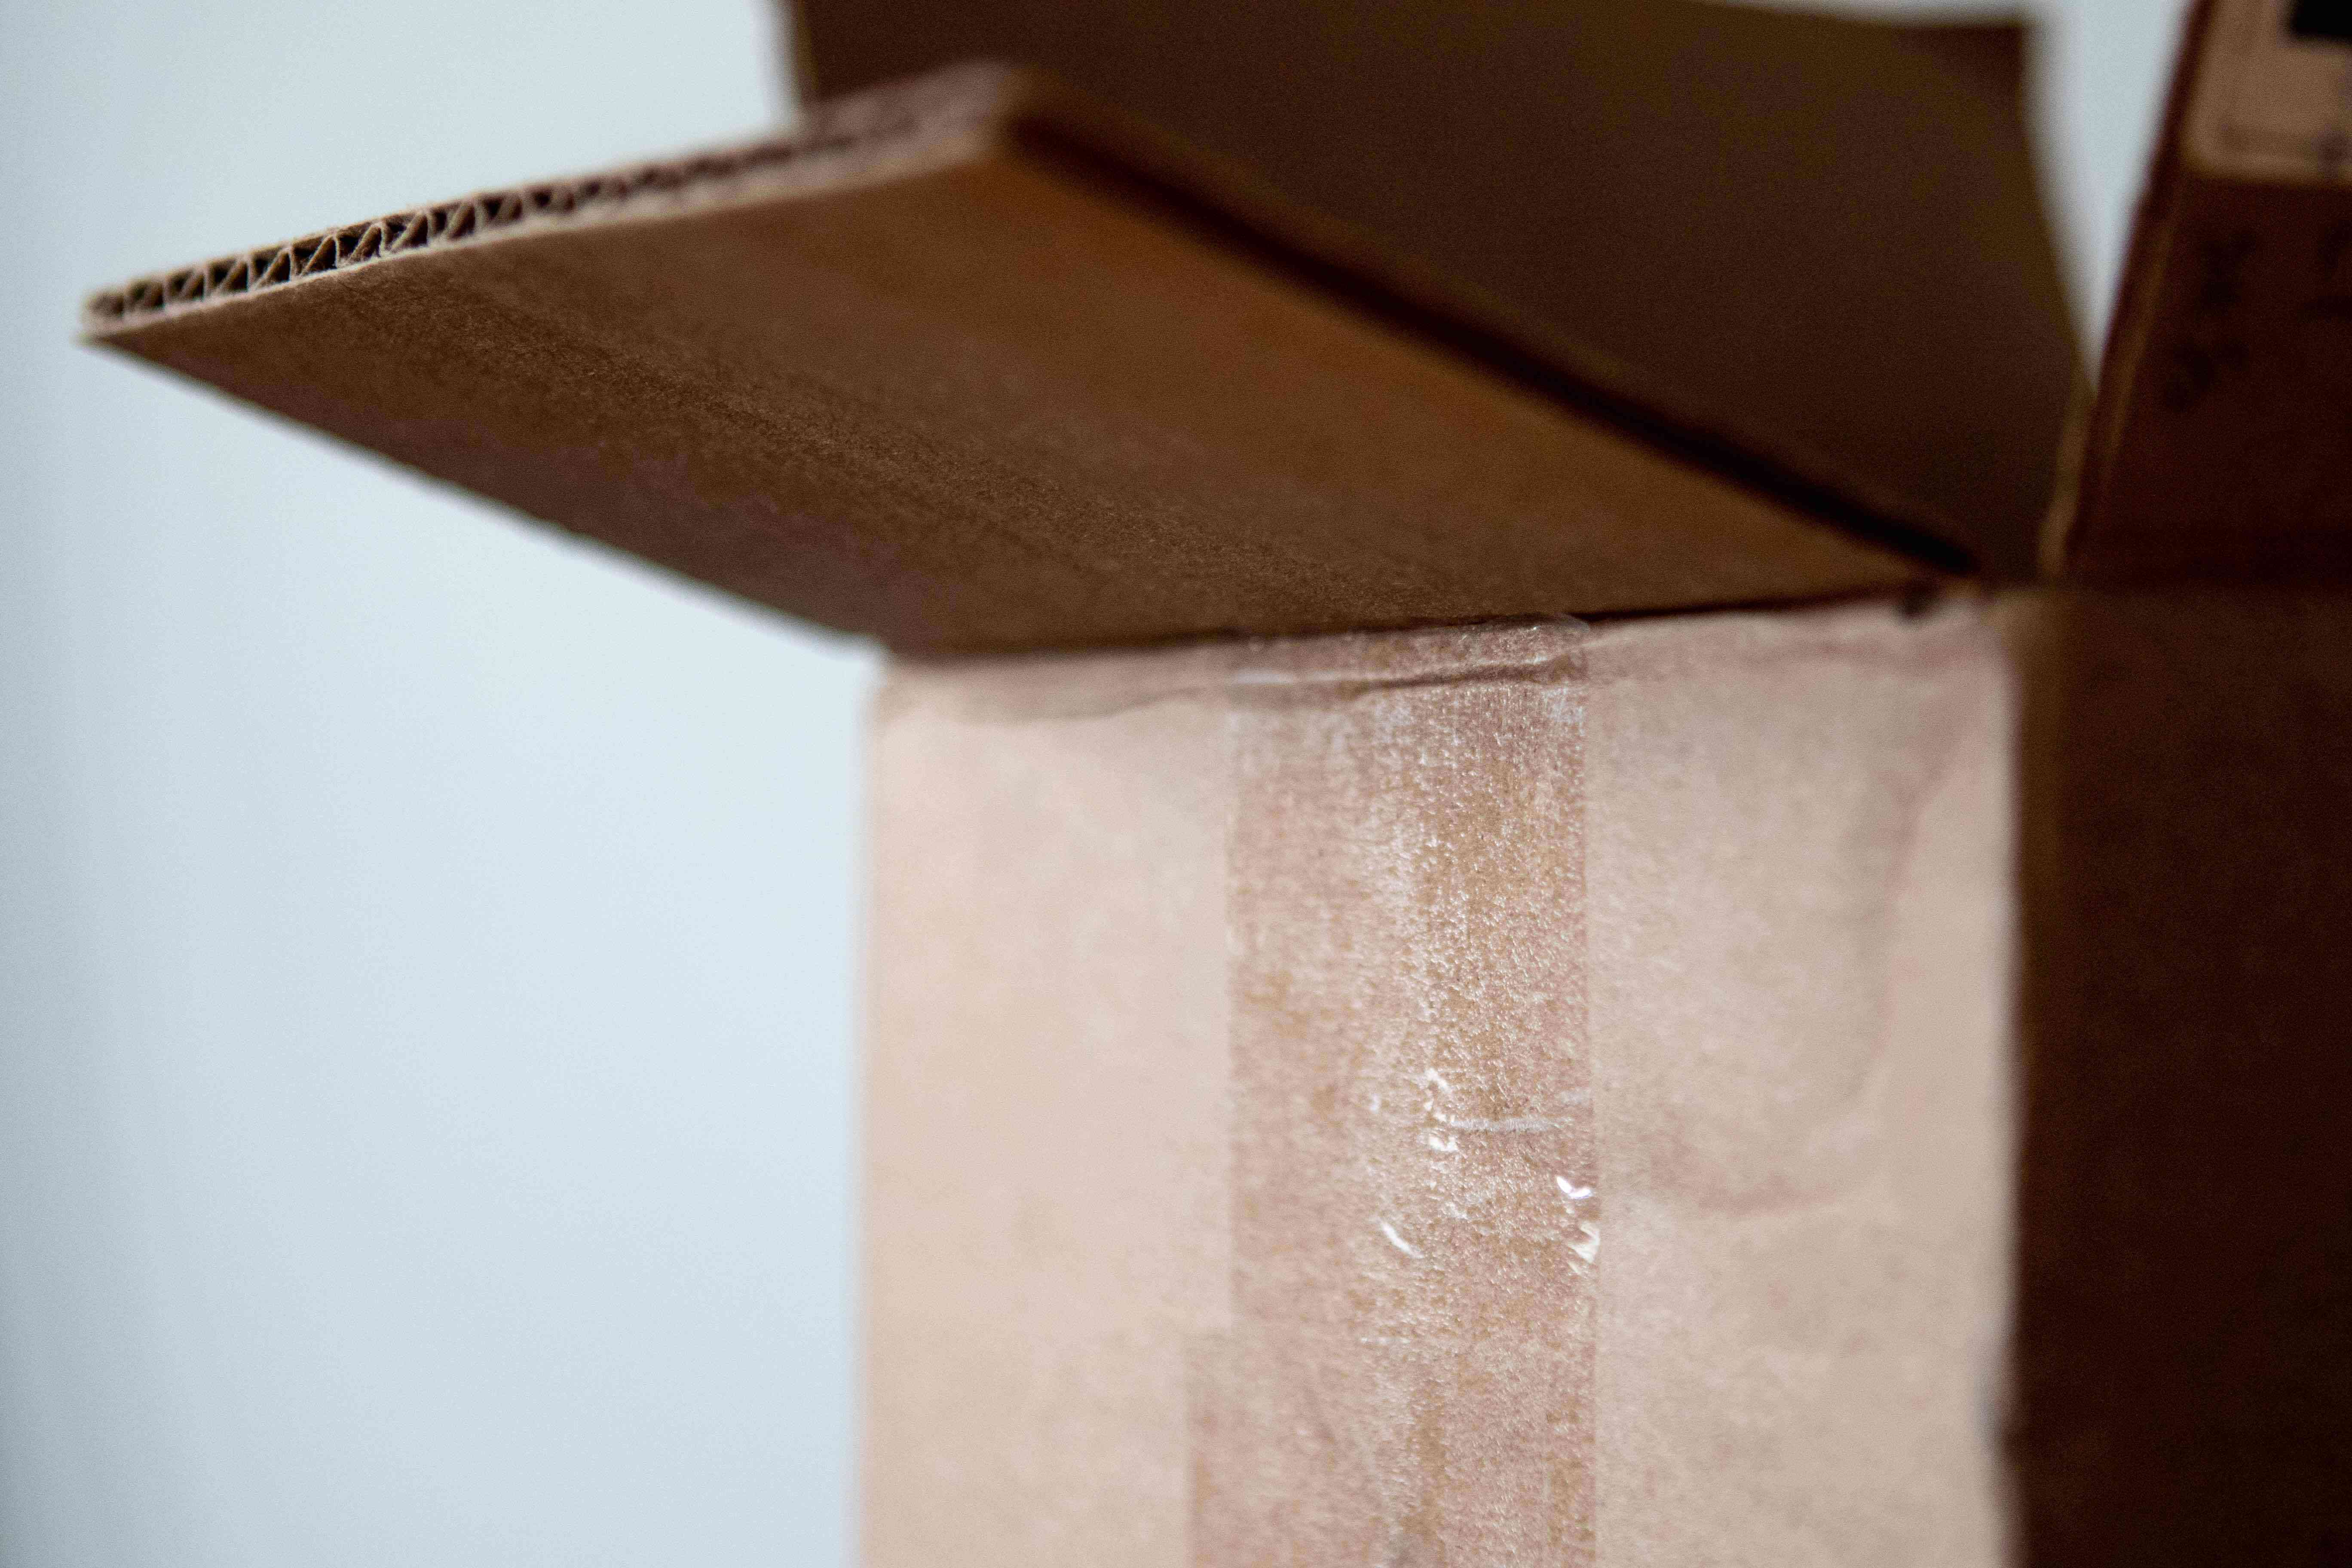 partial view of open cardboard box with clear tape attached